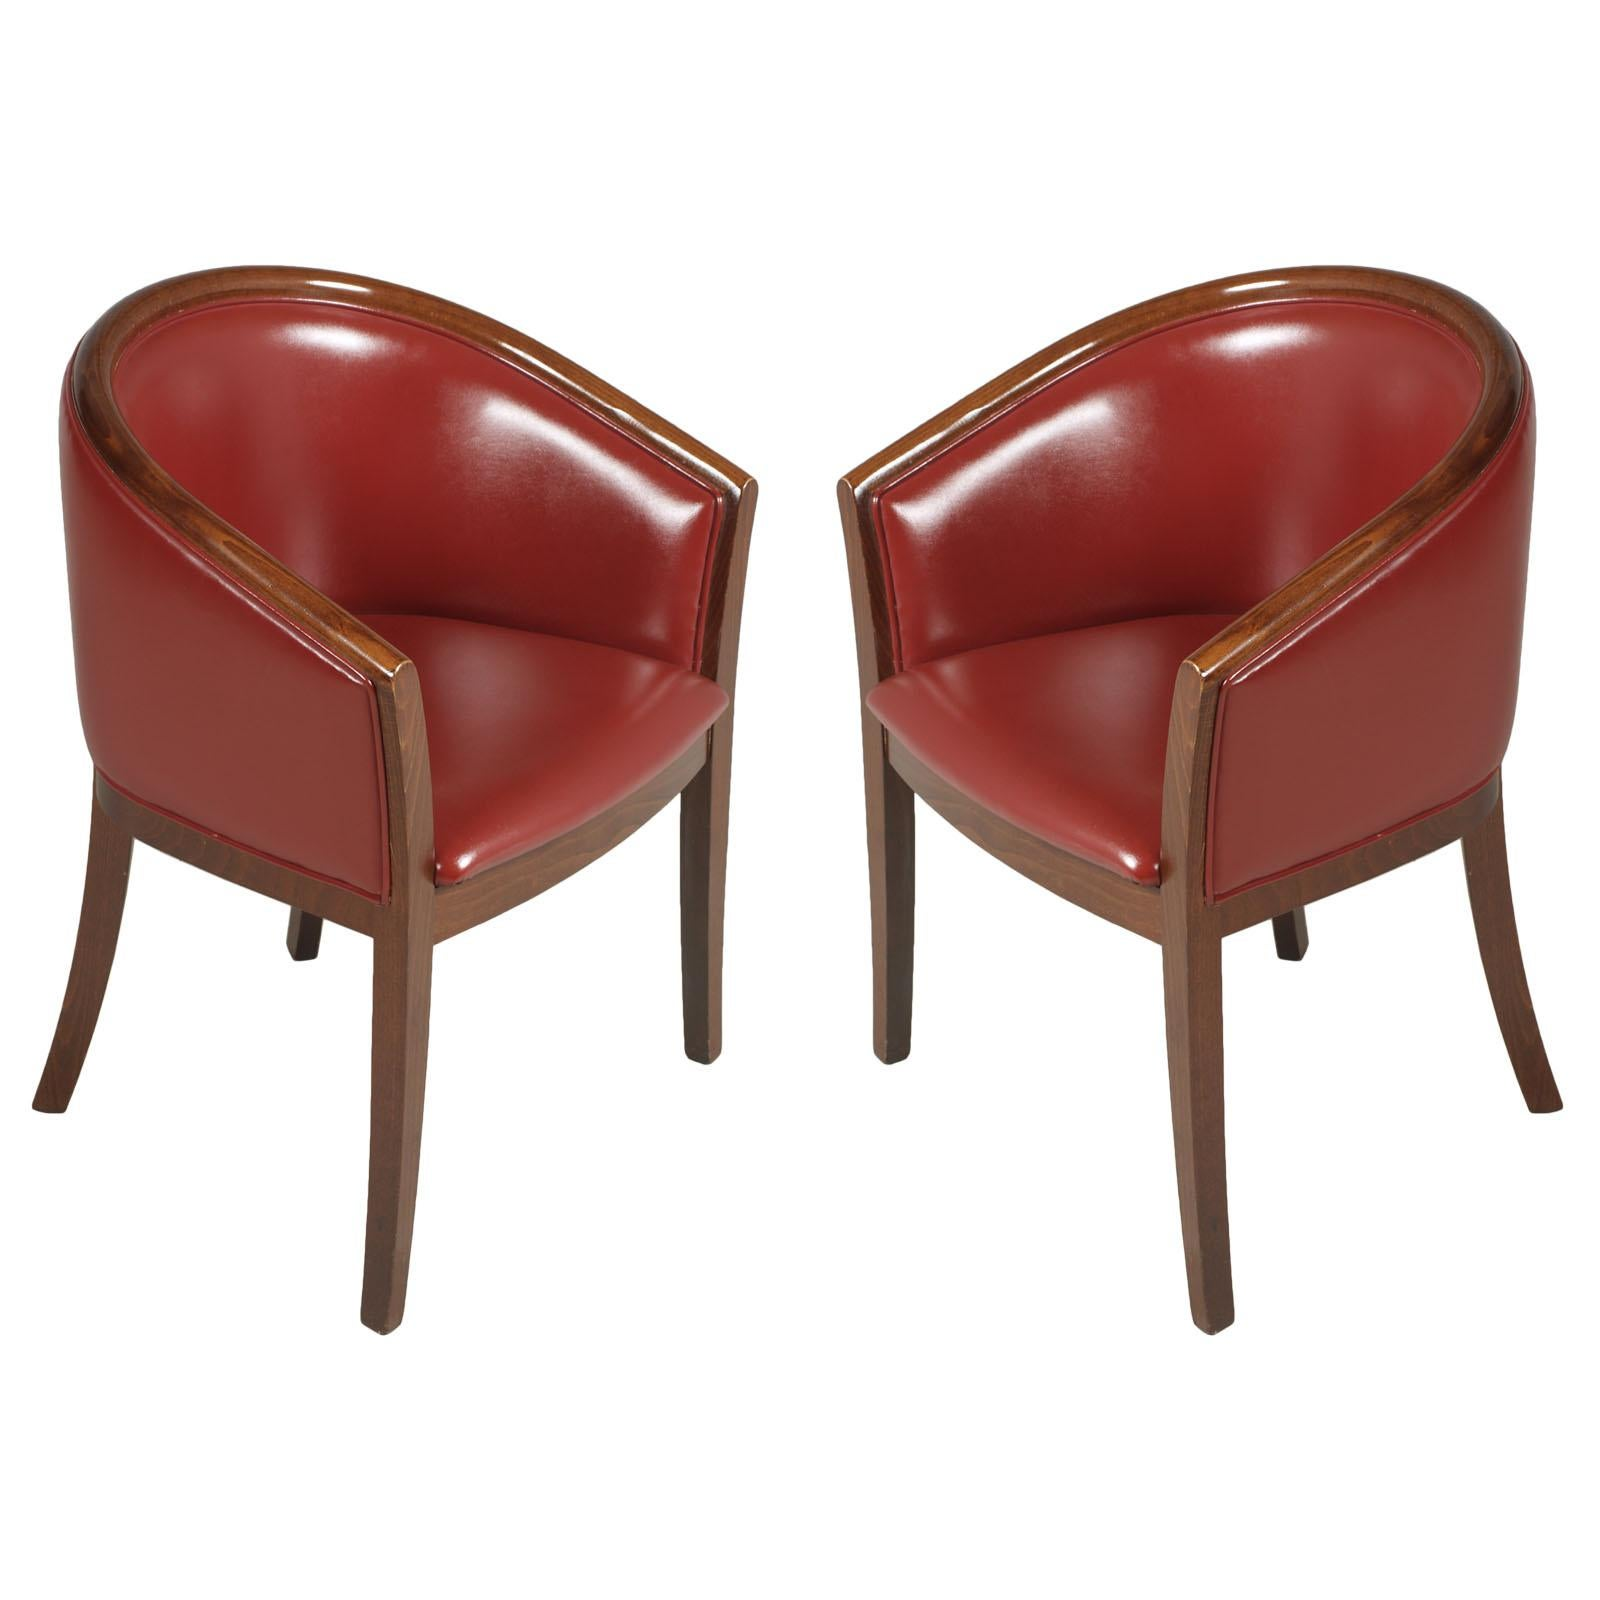 1930s Art Deco Pozzetto Pair Armchairs, Loung Chairs, Walnut, Leather Bordeaux